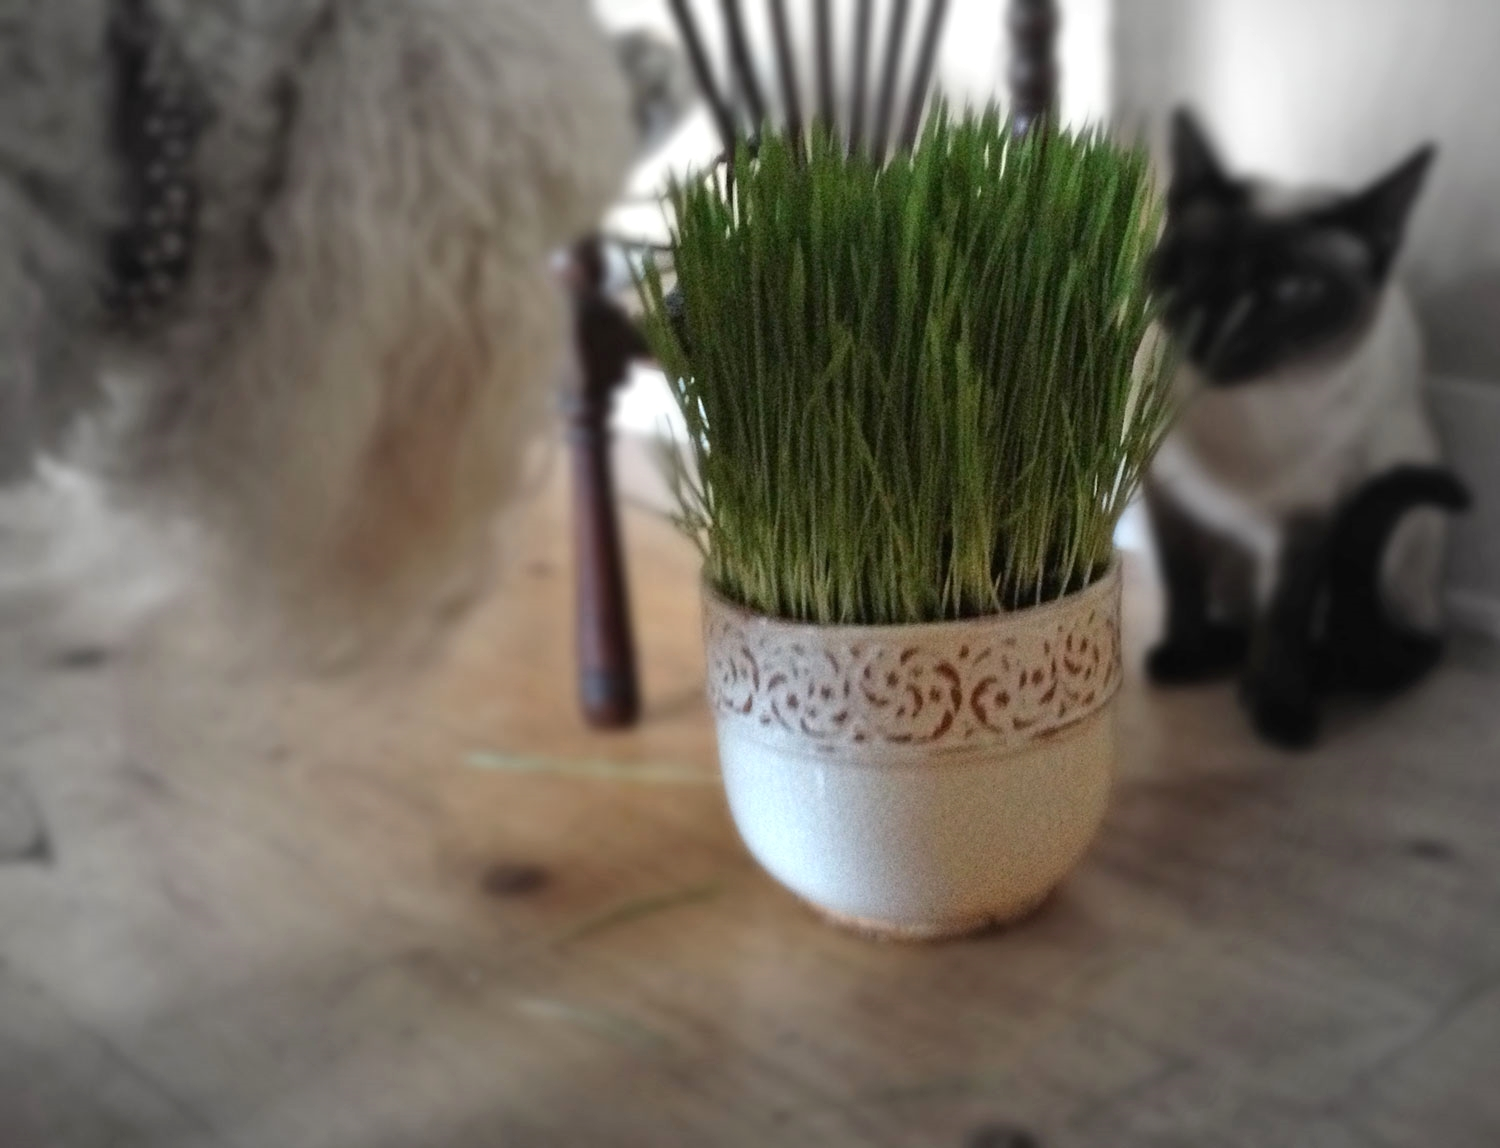 Dogs and cats love wheat berry grass indoors